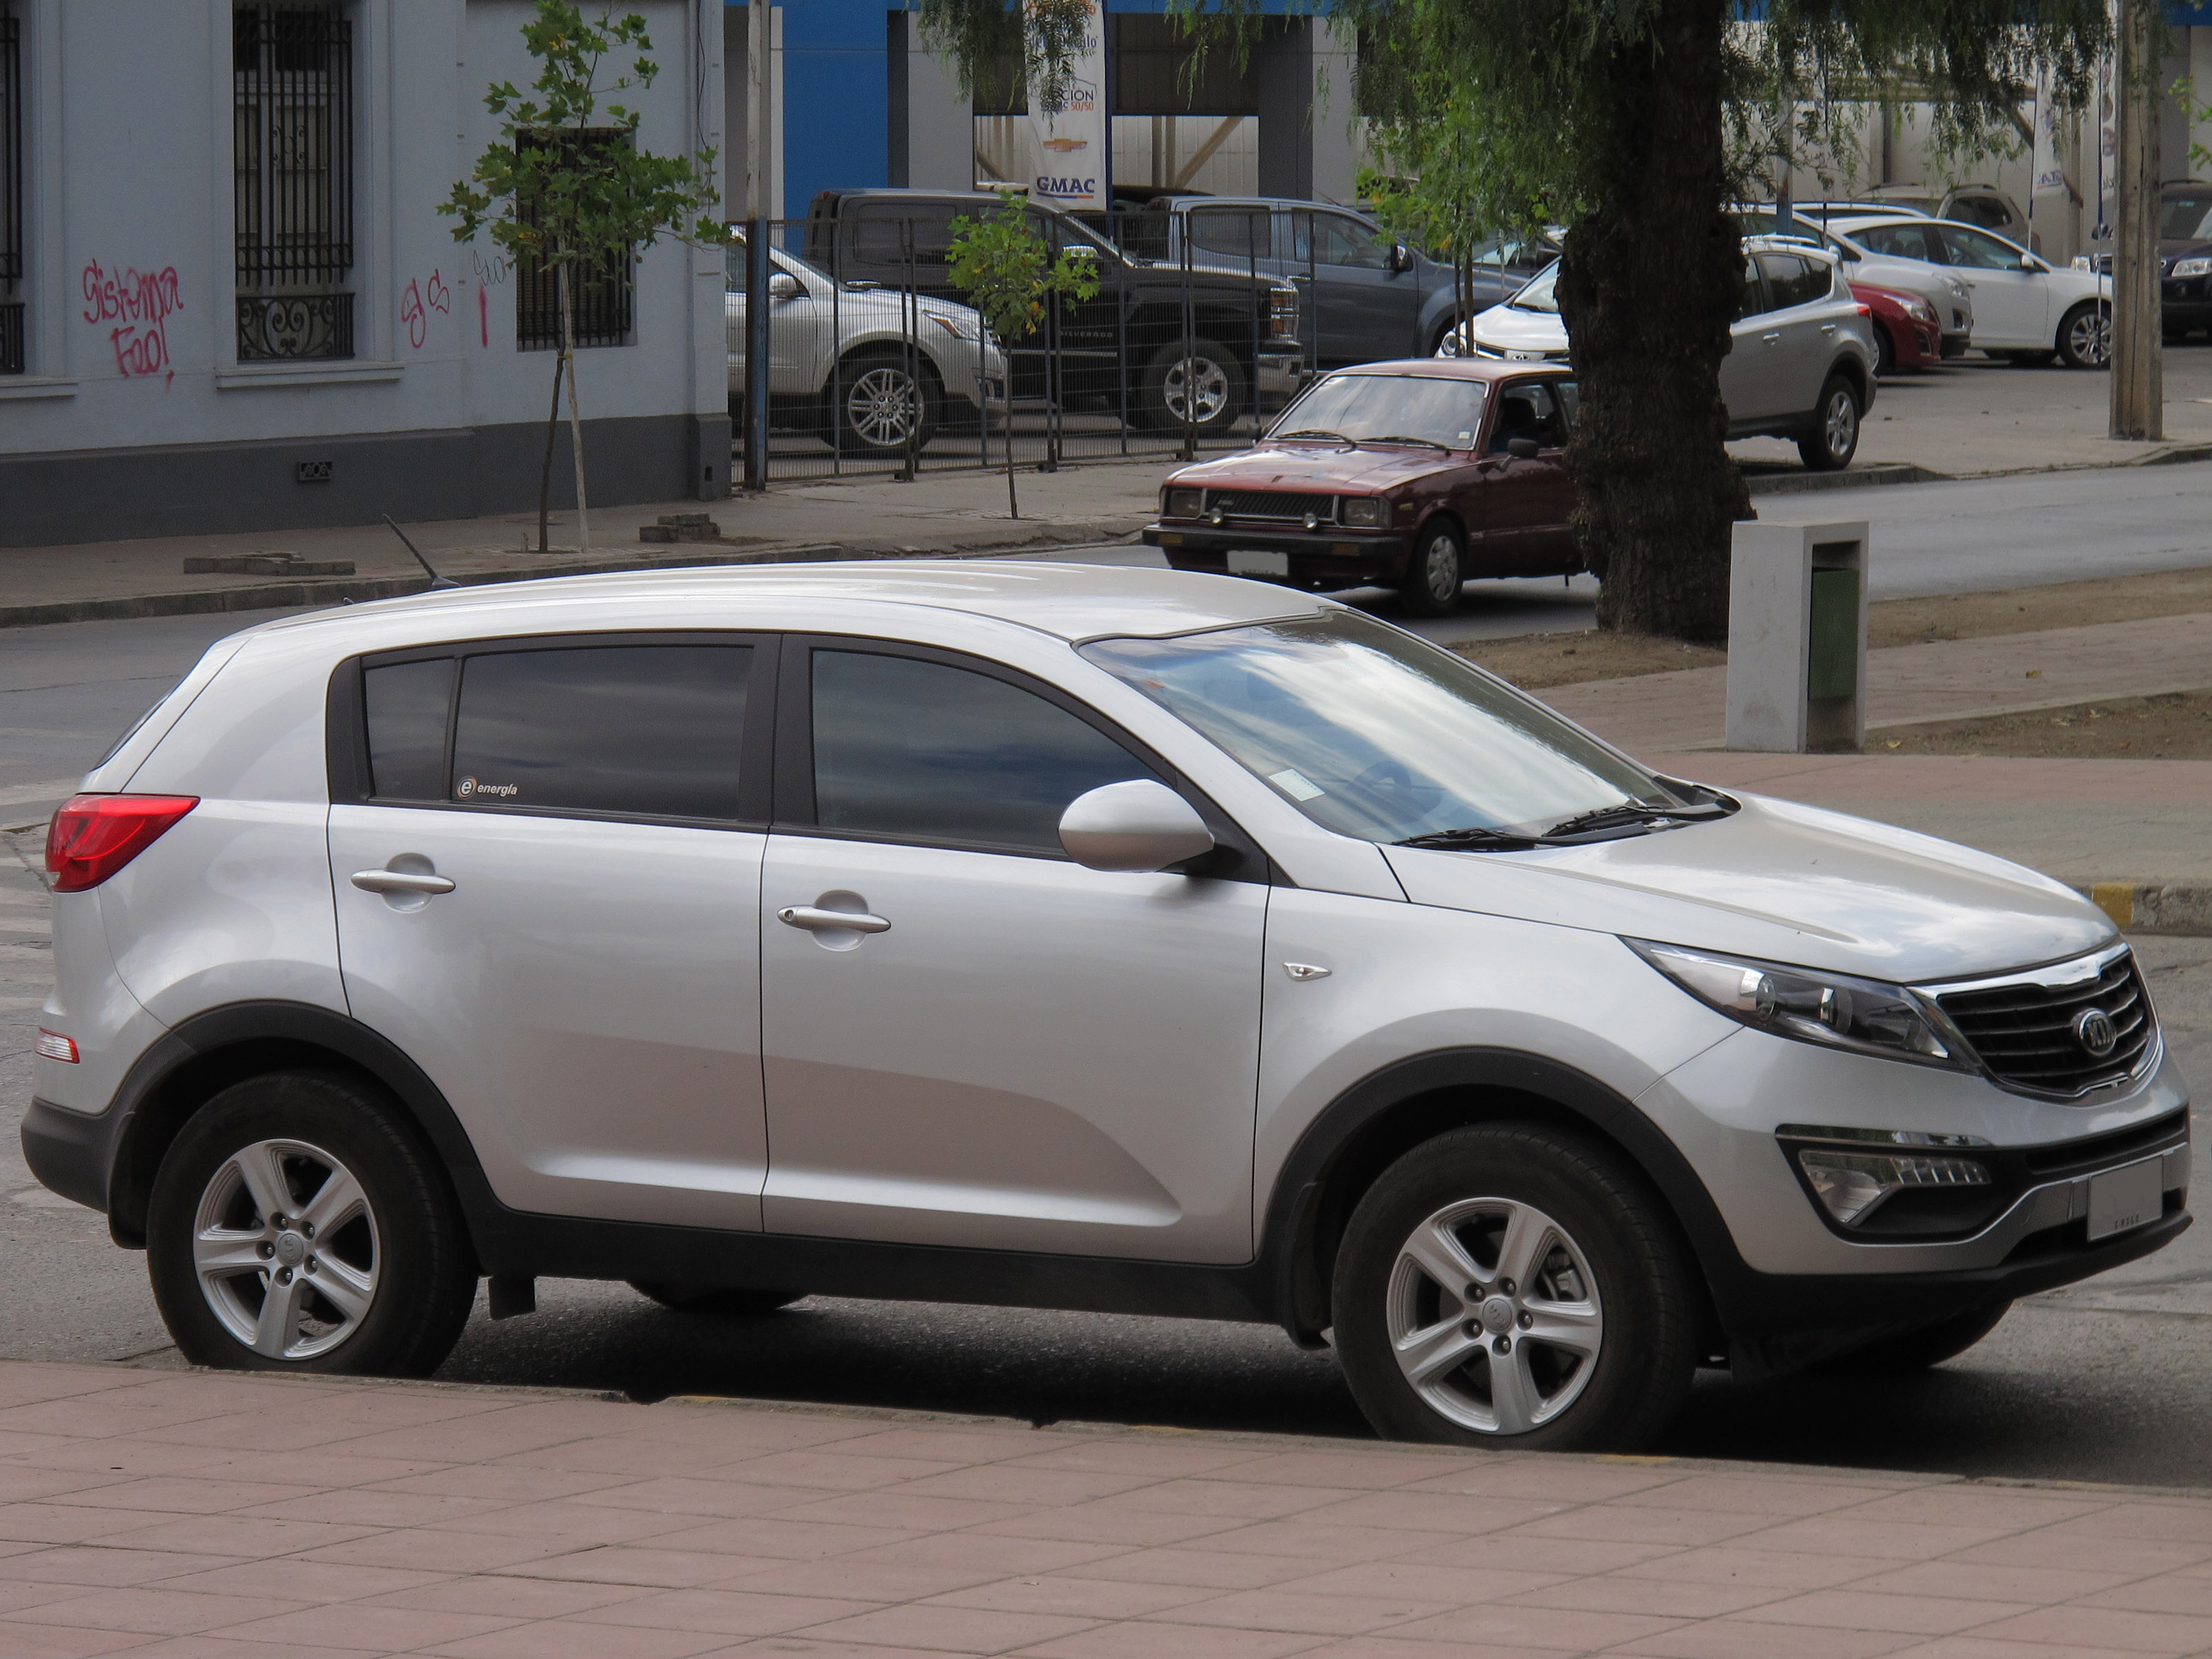 top look all a next like and group sportage bit the new gear ll kia it this coming generation is